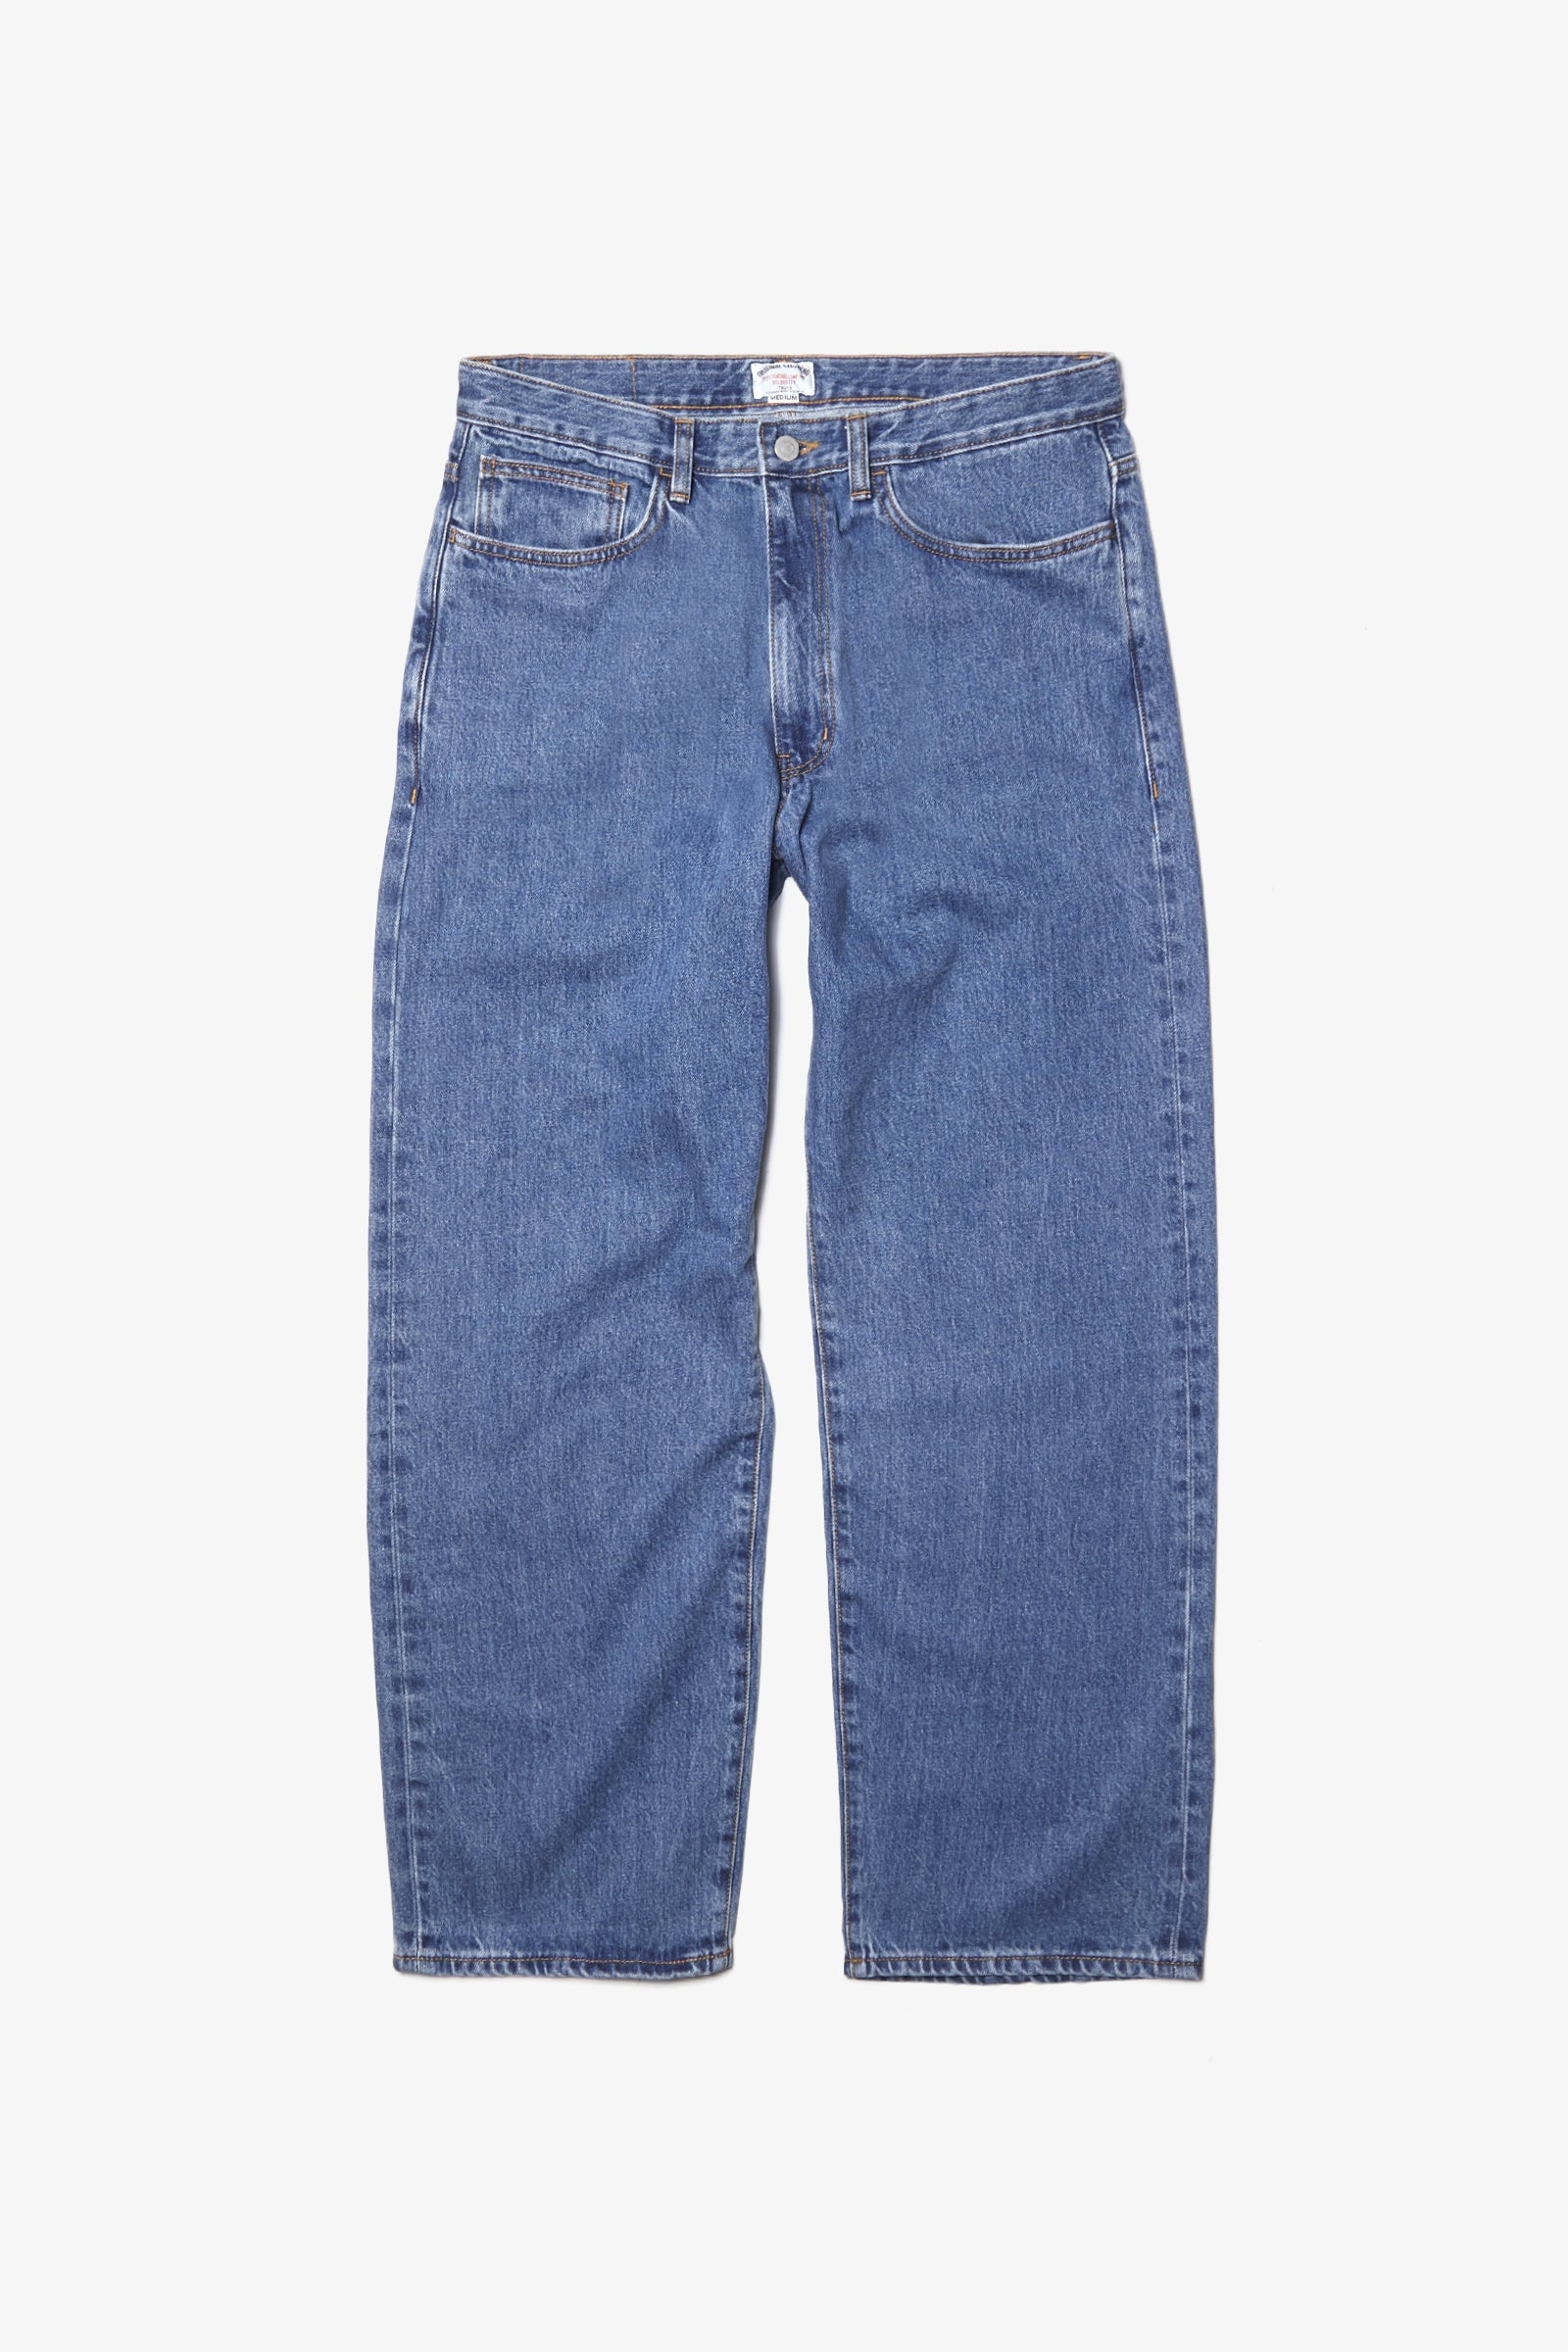 Outstanding & Co. - Wide Washed Jeans - Indigo